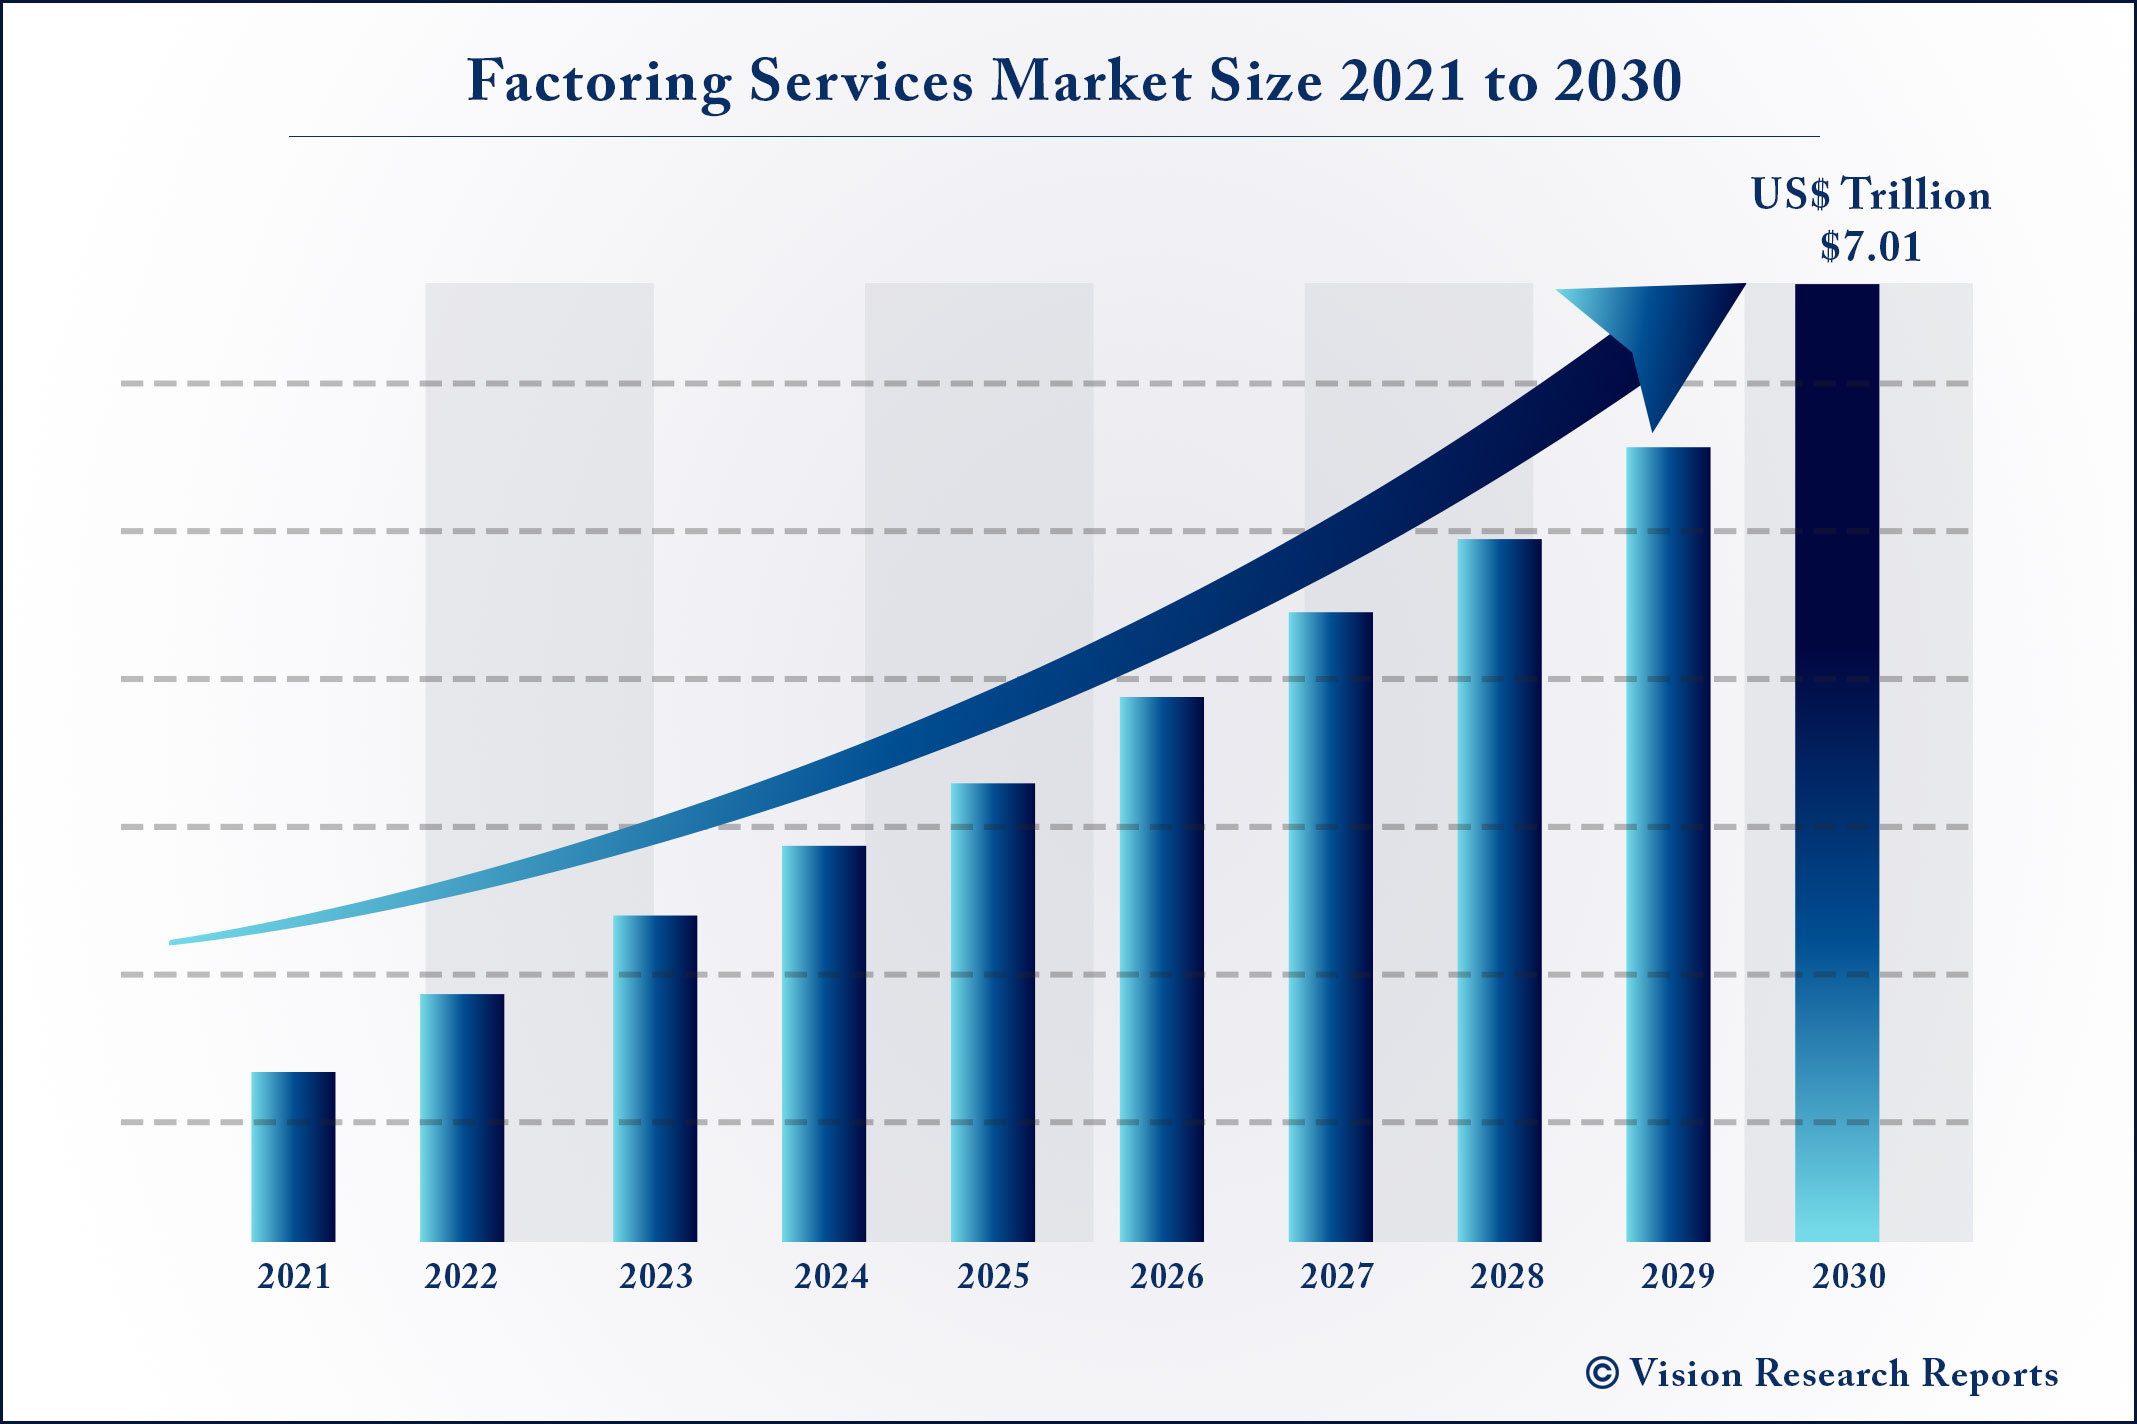 Factoring Services Market Size 2021 to 2030